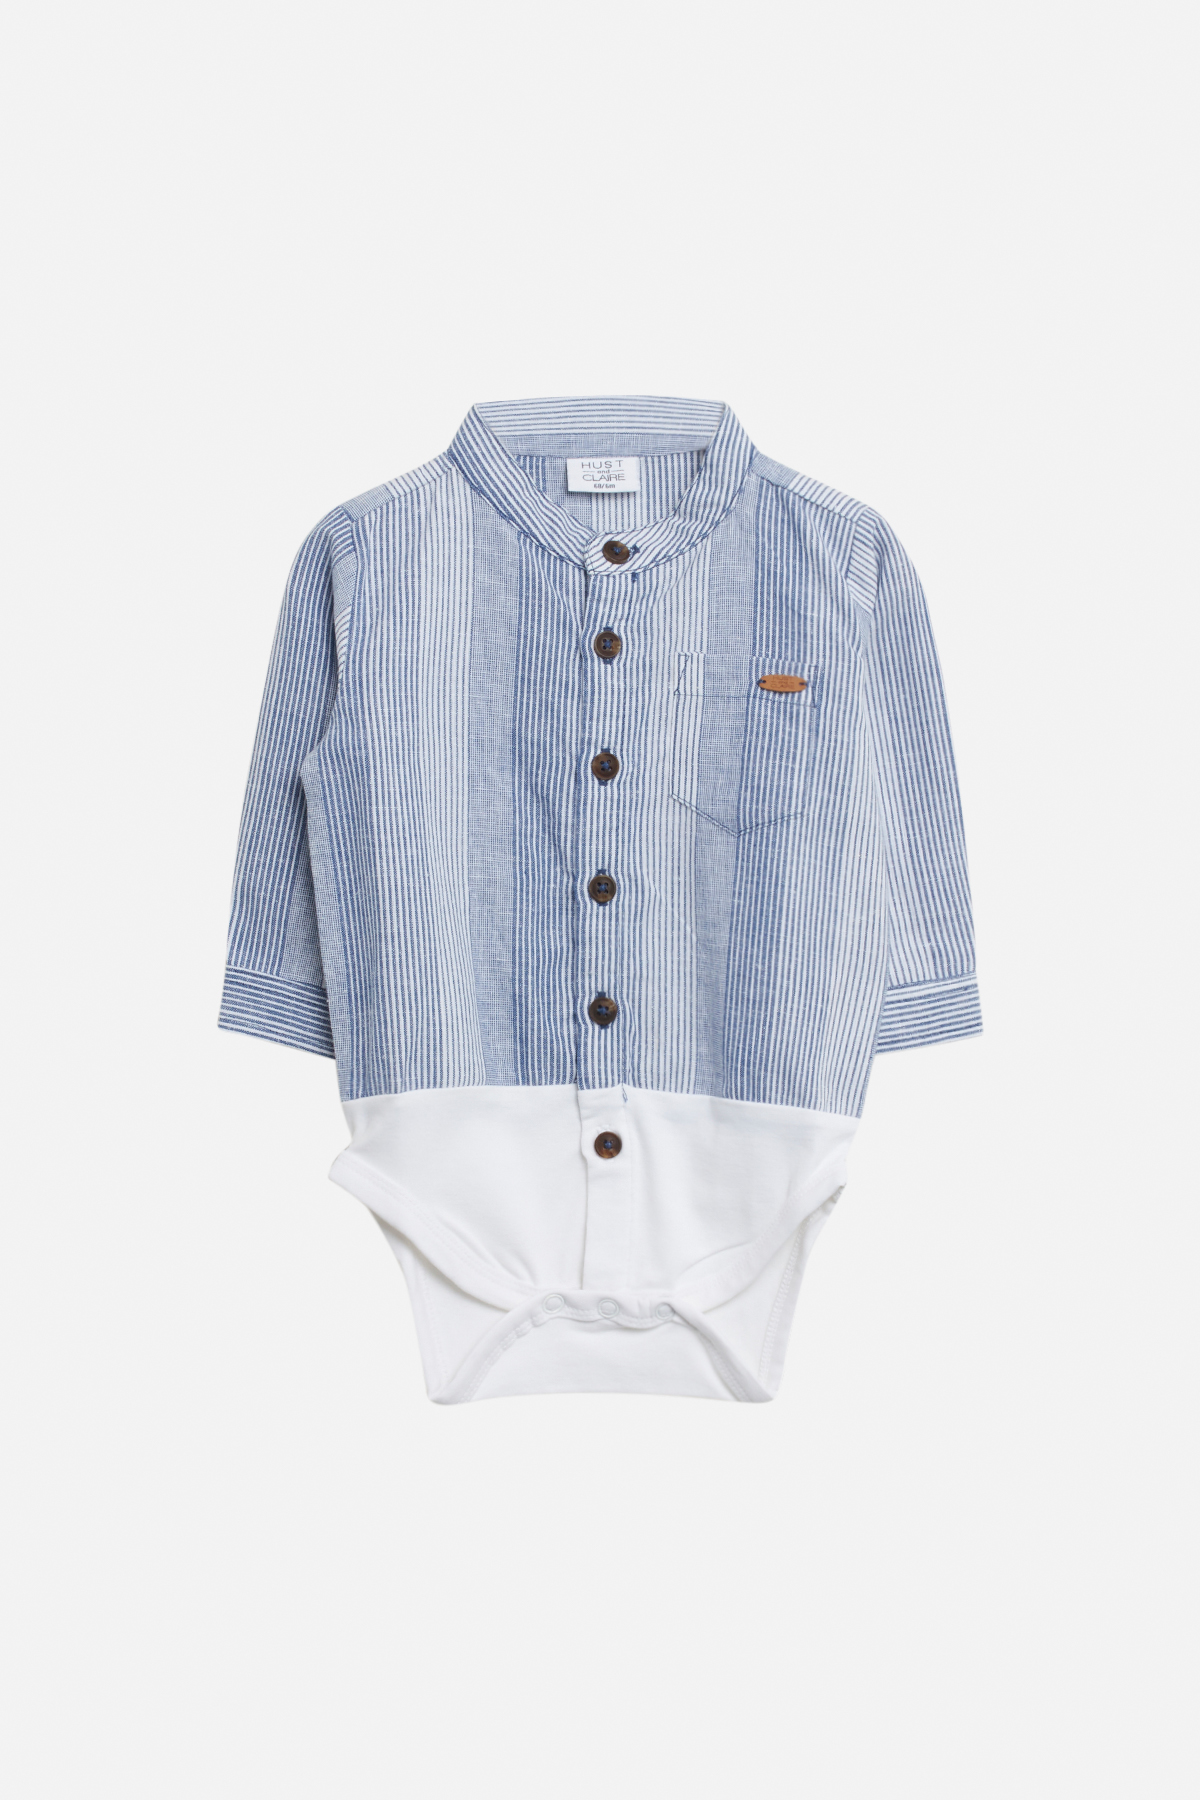 Hust & Claire - Bertil Shirt Body - Blue Moon